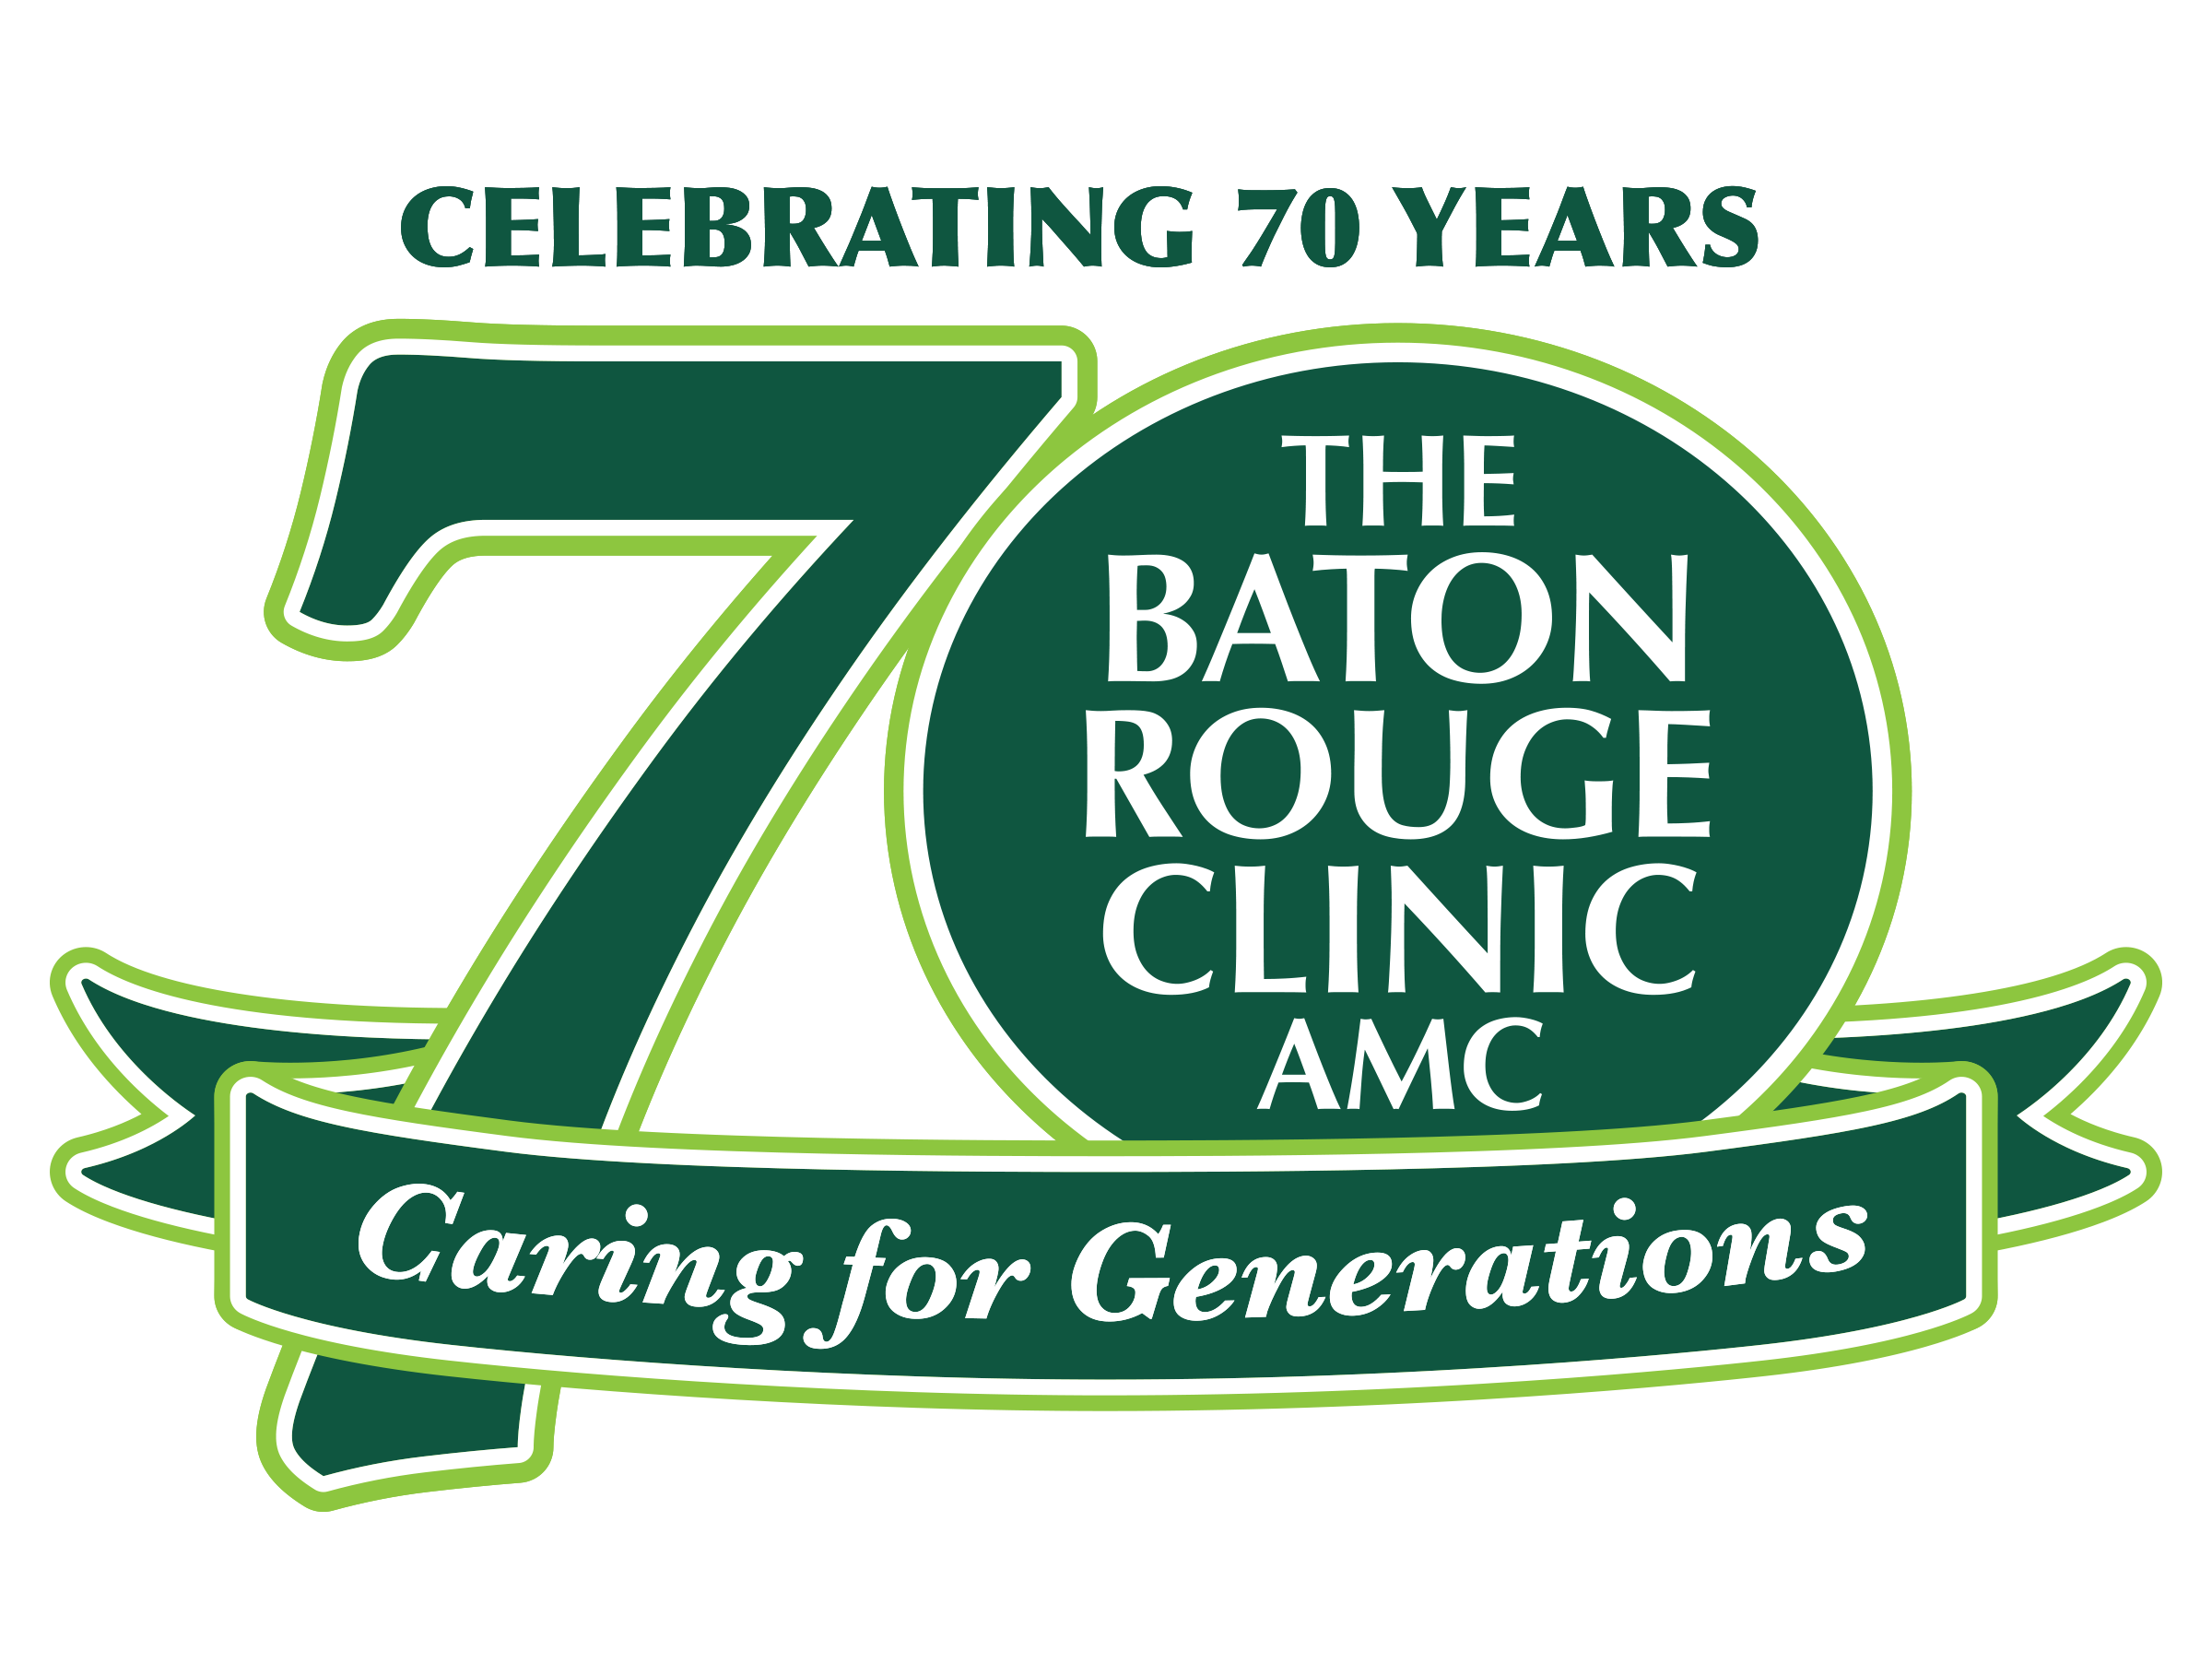 The Baton Rouge Clinic AMC